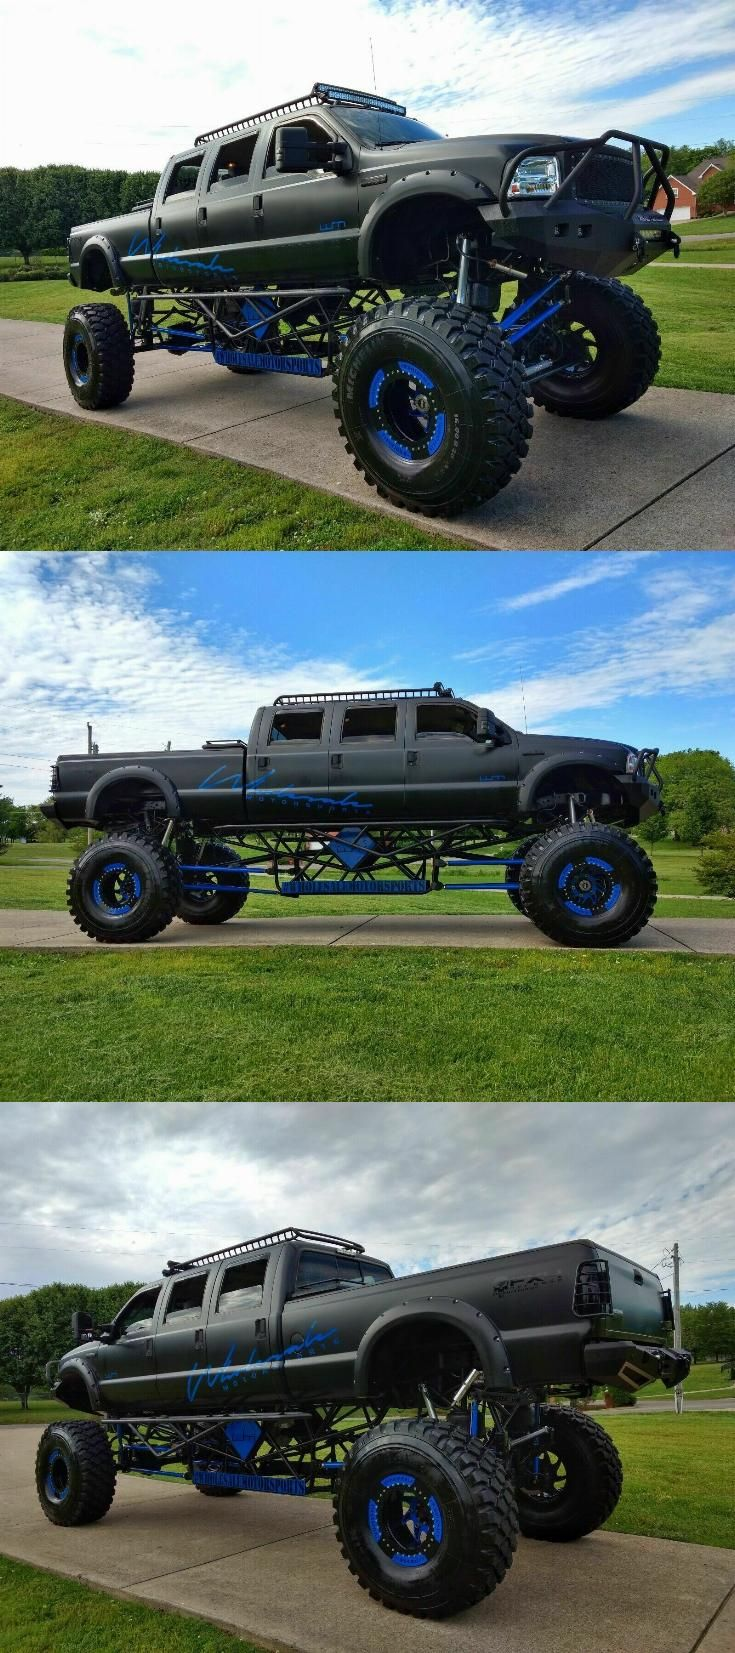 6 Door Truck : truck, Stretched, Custom, Truck, Lifted, Trucks,, Trucks, Sale,, Monster